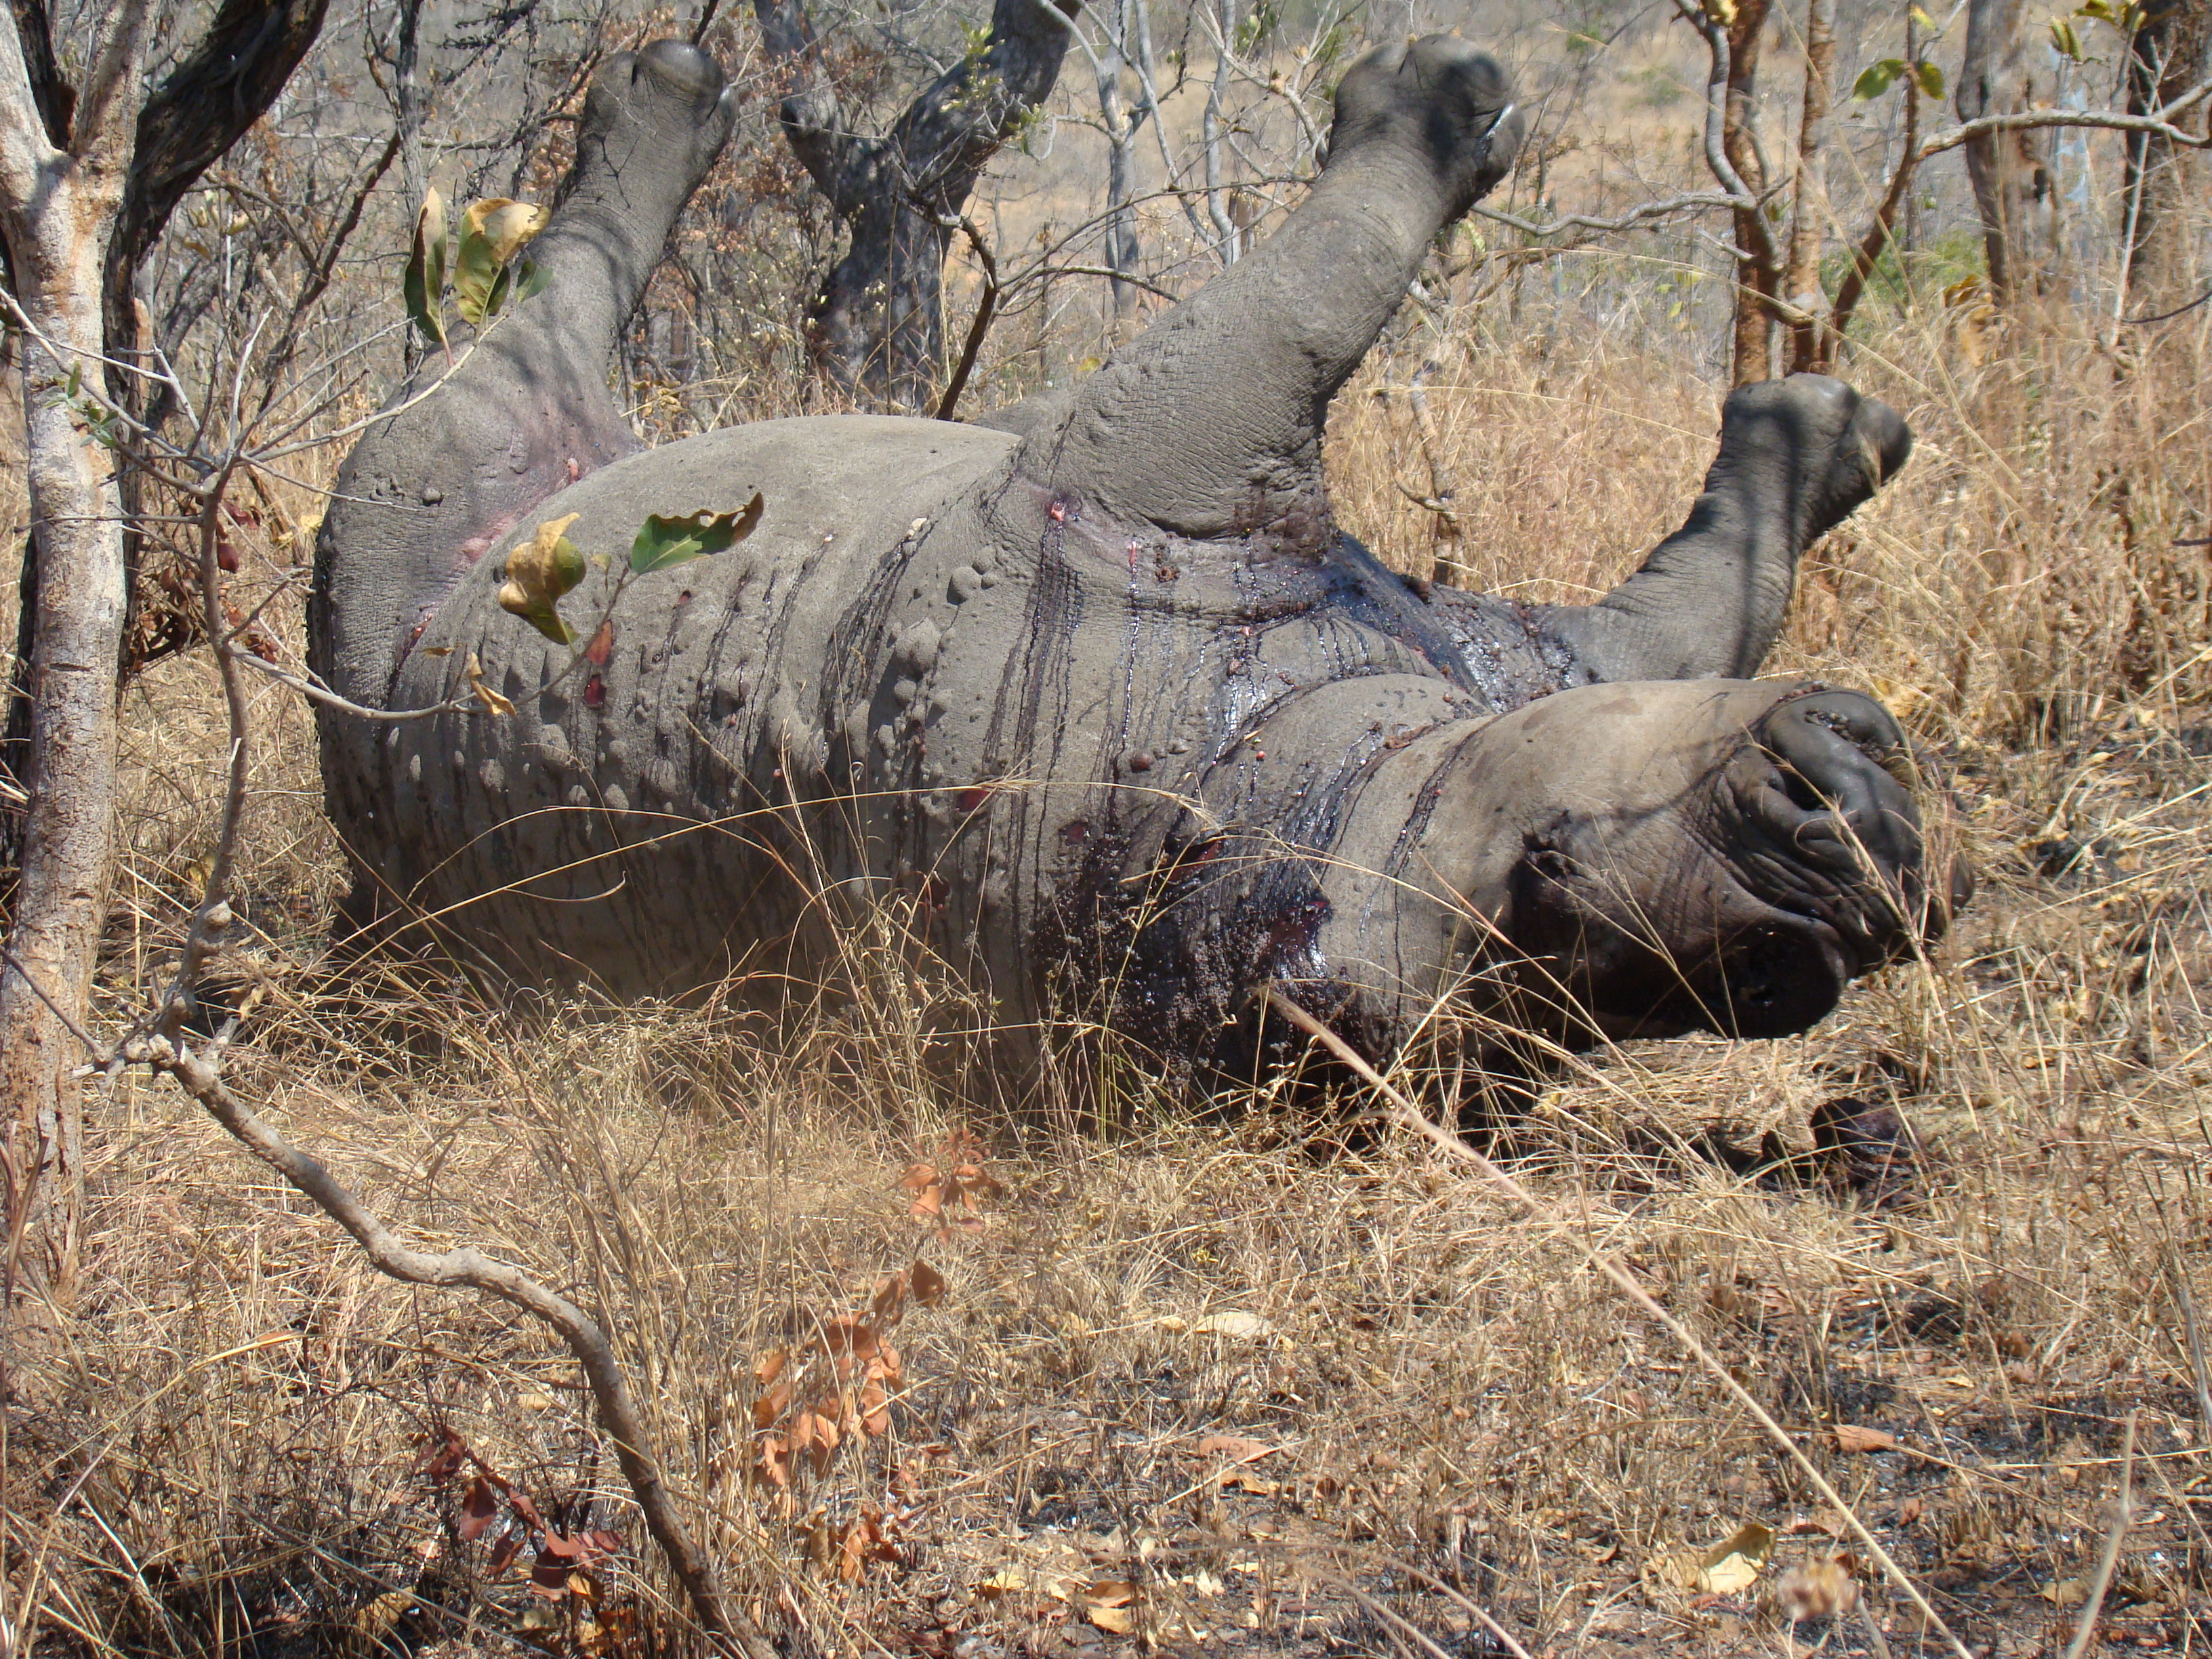 My personal experiences with the Rhino Poaching crisis